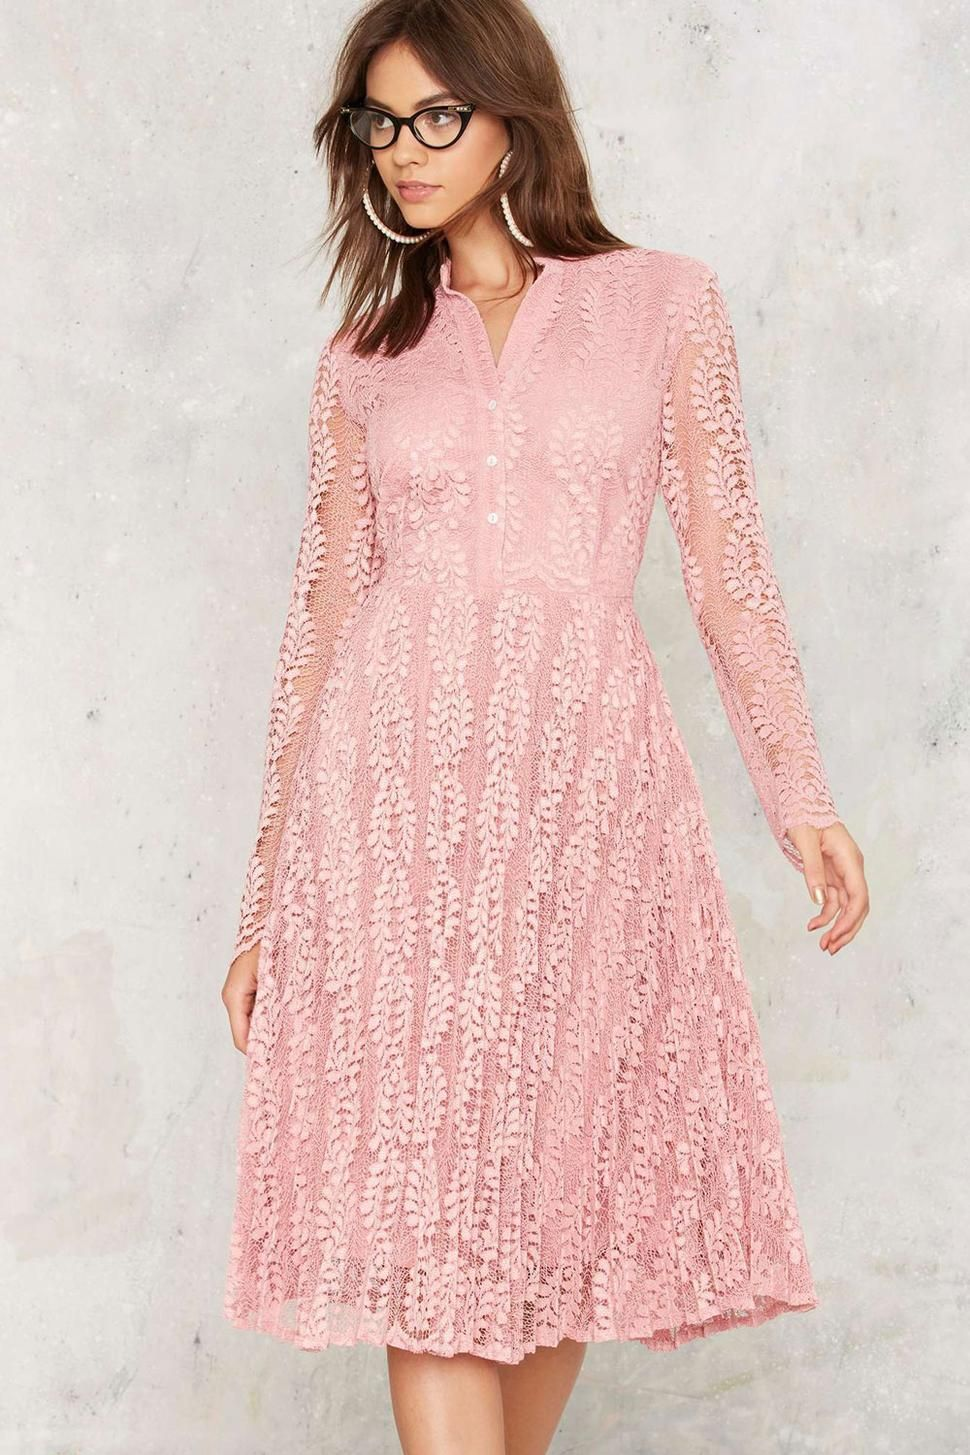 Flattering Dresses with Sleeves - Try one of these sensible and cool ...